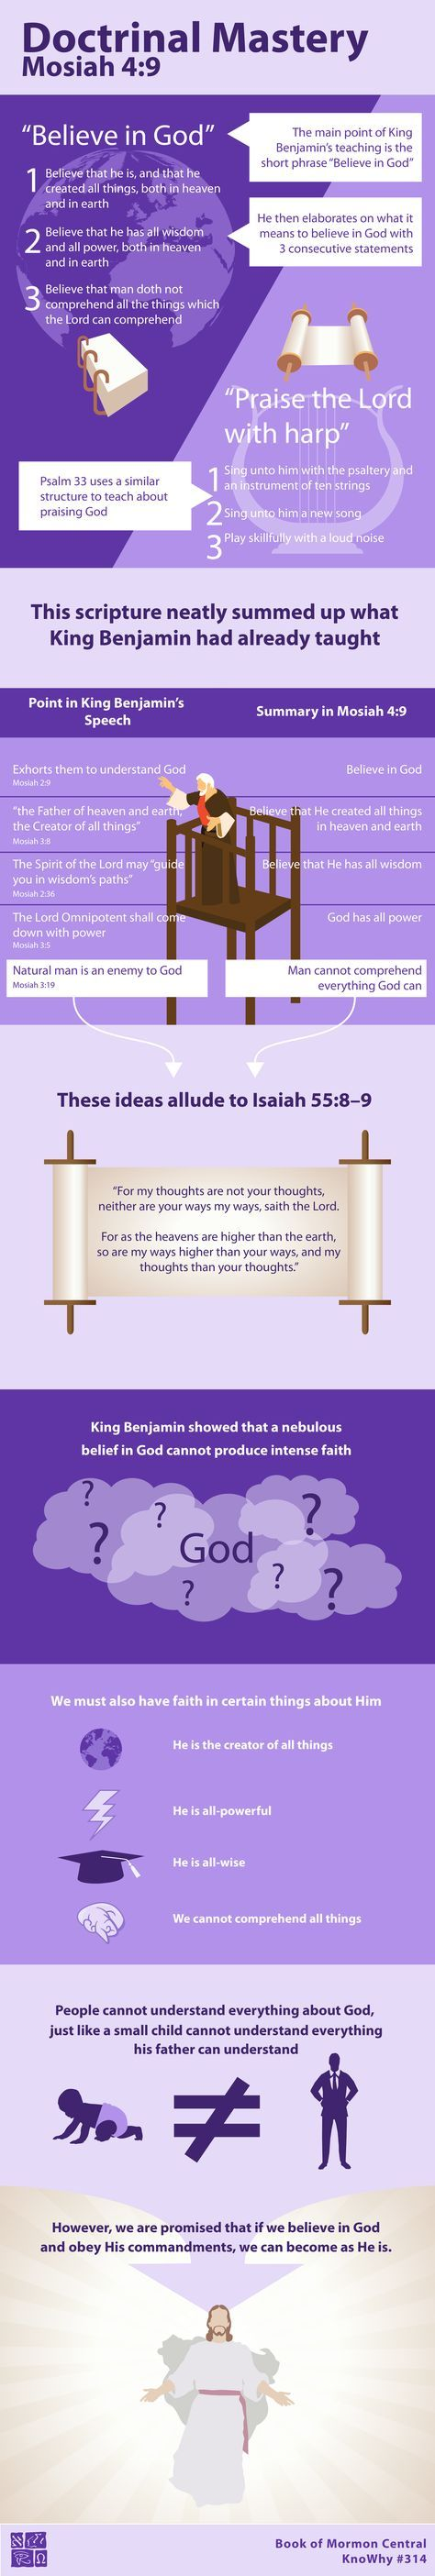 """In Mosiah 4:9, King Benjamin first stated that his people should """"believe in God"""". He then told them three specific things that they should believe about God. This layout helps to show that Benjamin's three statements explain what it means to """"believe in God.""""   https://knowhy.bookofmormoncentral.org/content/how-did-king-benjamin-teach-his-people-to-trust-god-more  #God #Faith #HeavenlyFather #JesusChrist #LDS #Mormon #ShareGoodness #Bible #Psalms #BookofMormon"""